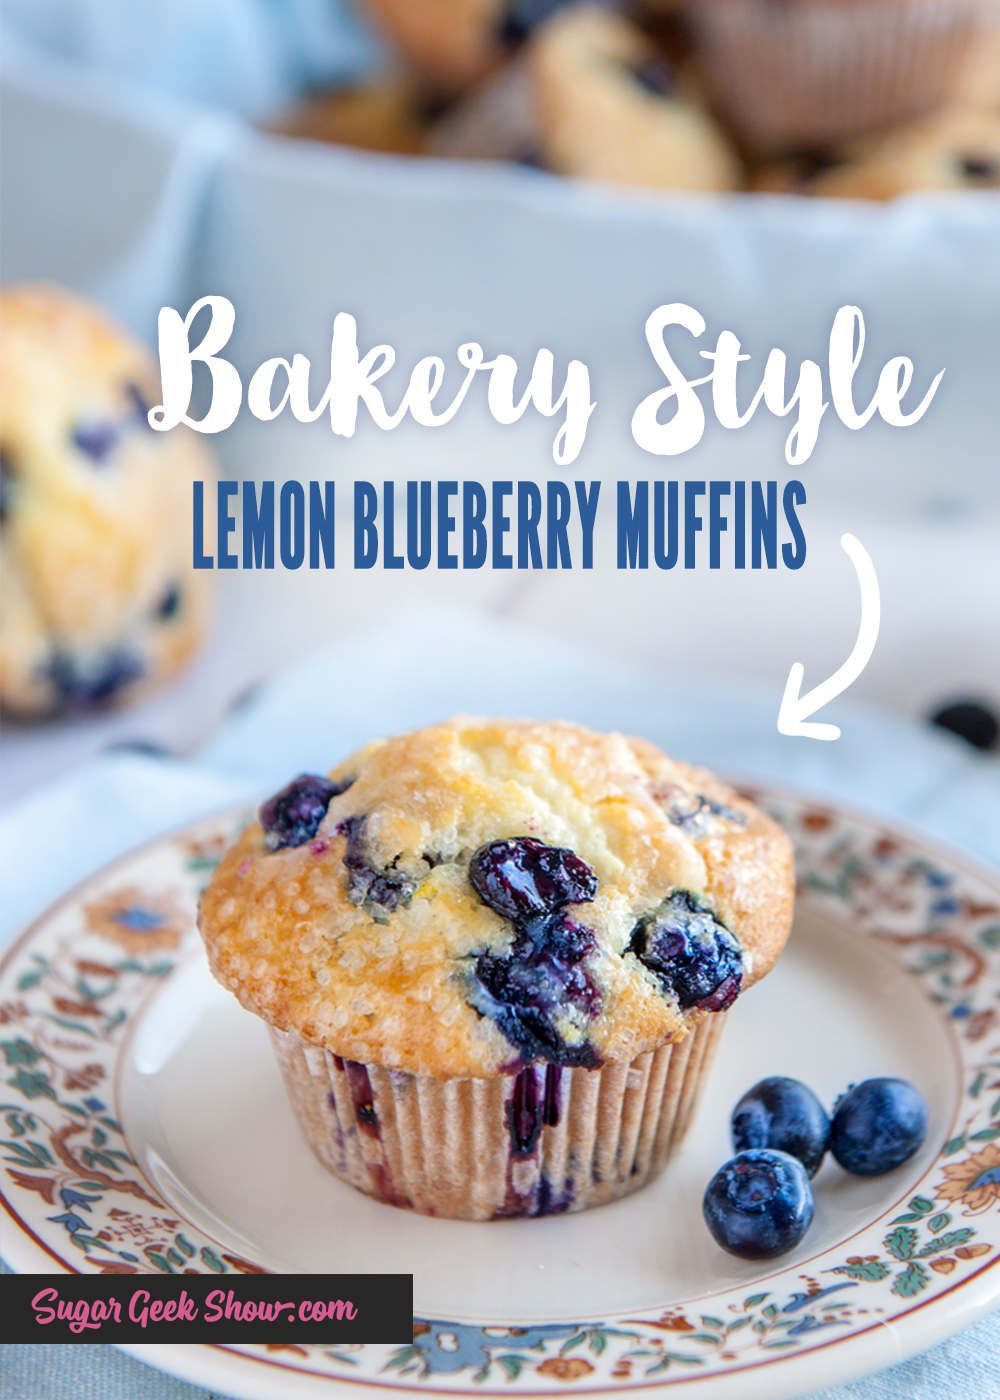 Lemon Blueberry Muffin Recipe Bakery Style Sugar Geek Show Recipe Lemon Blueberry Muffins Blue Berry Muffins Muffin Recipes Blueberry